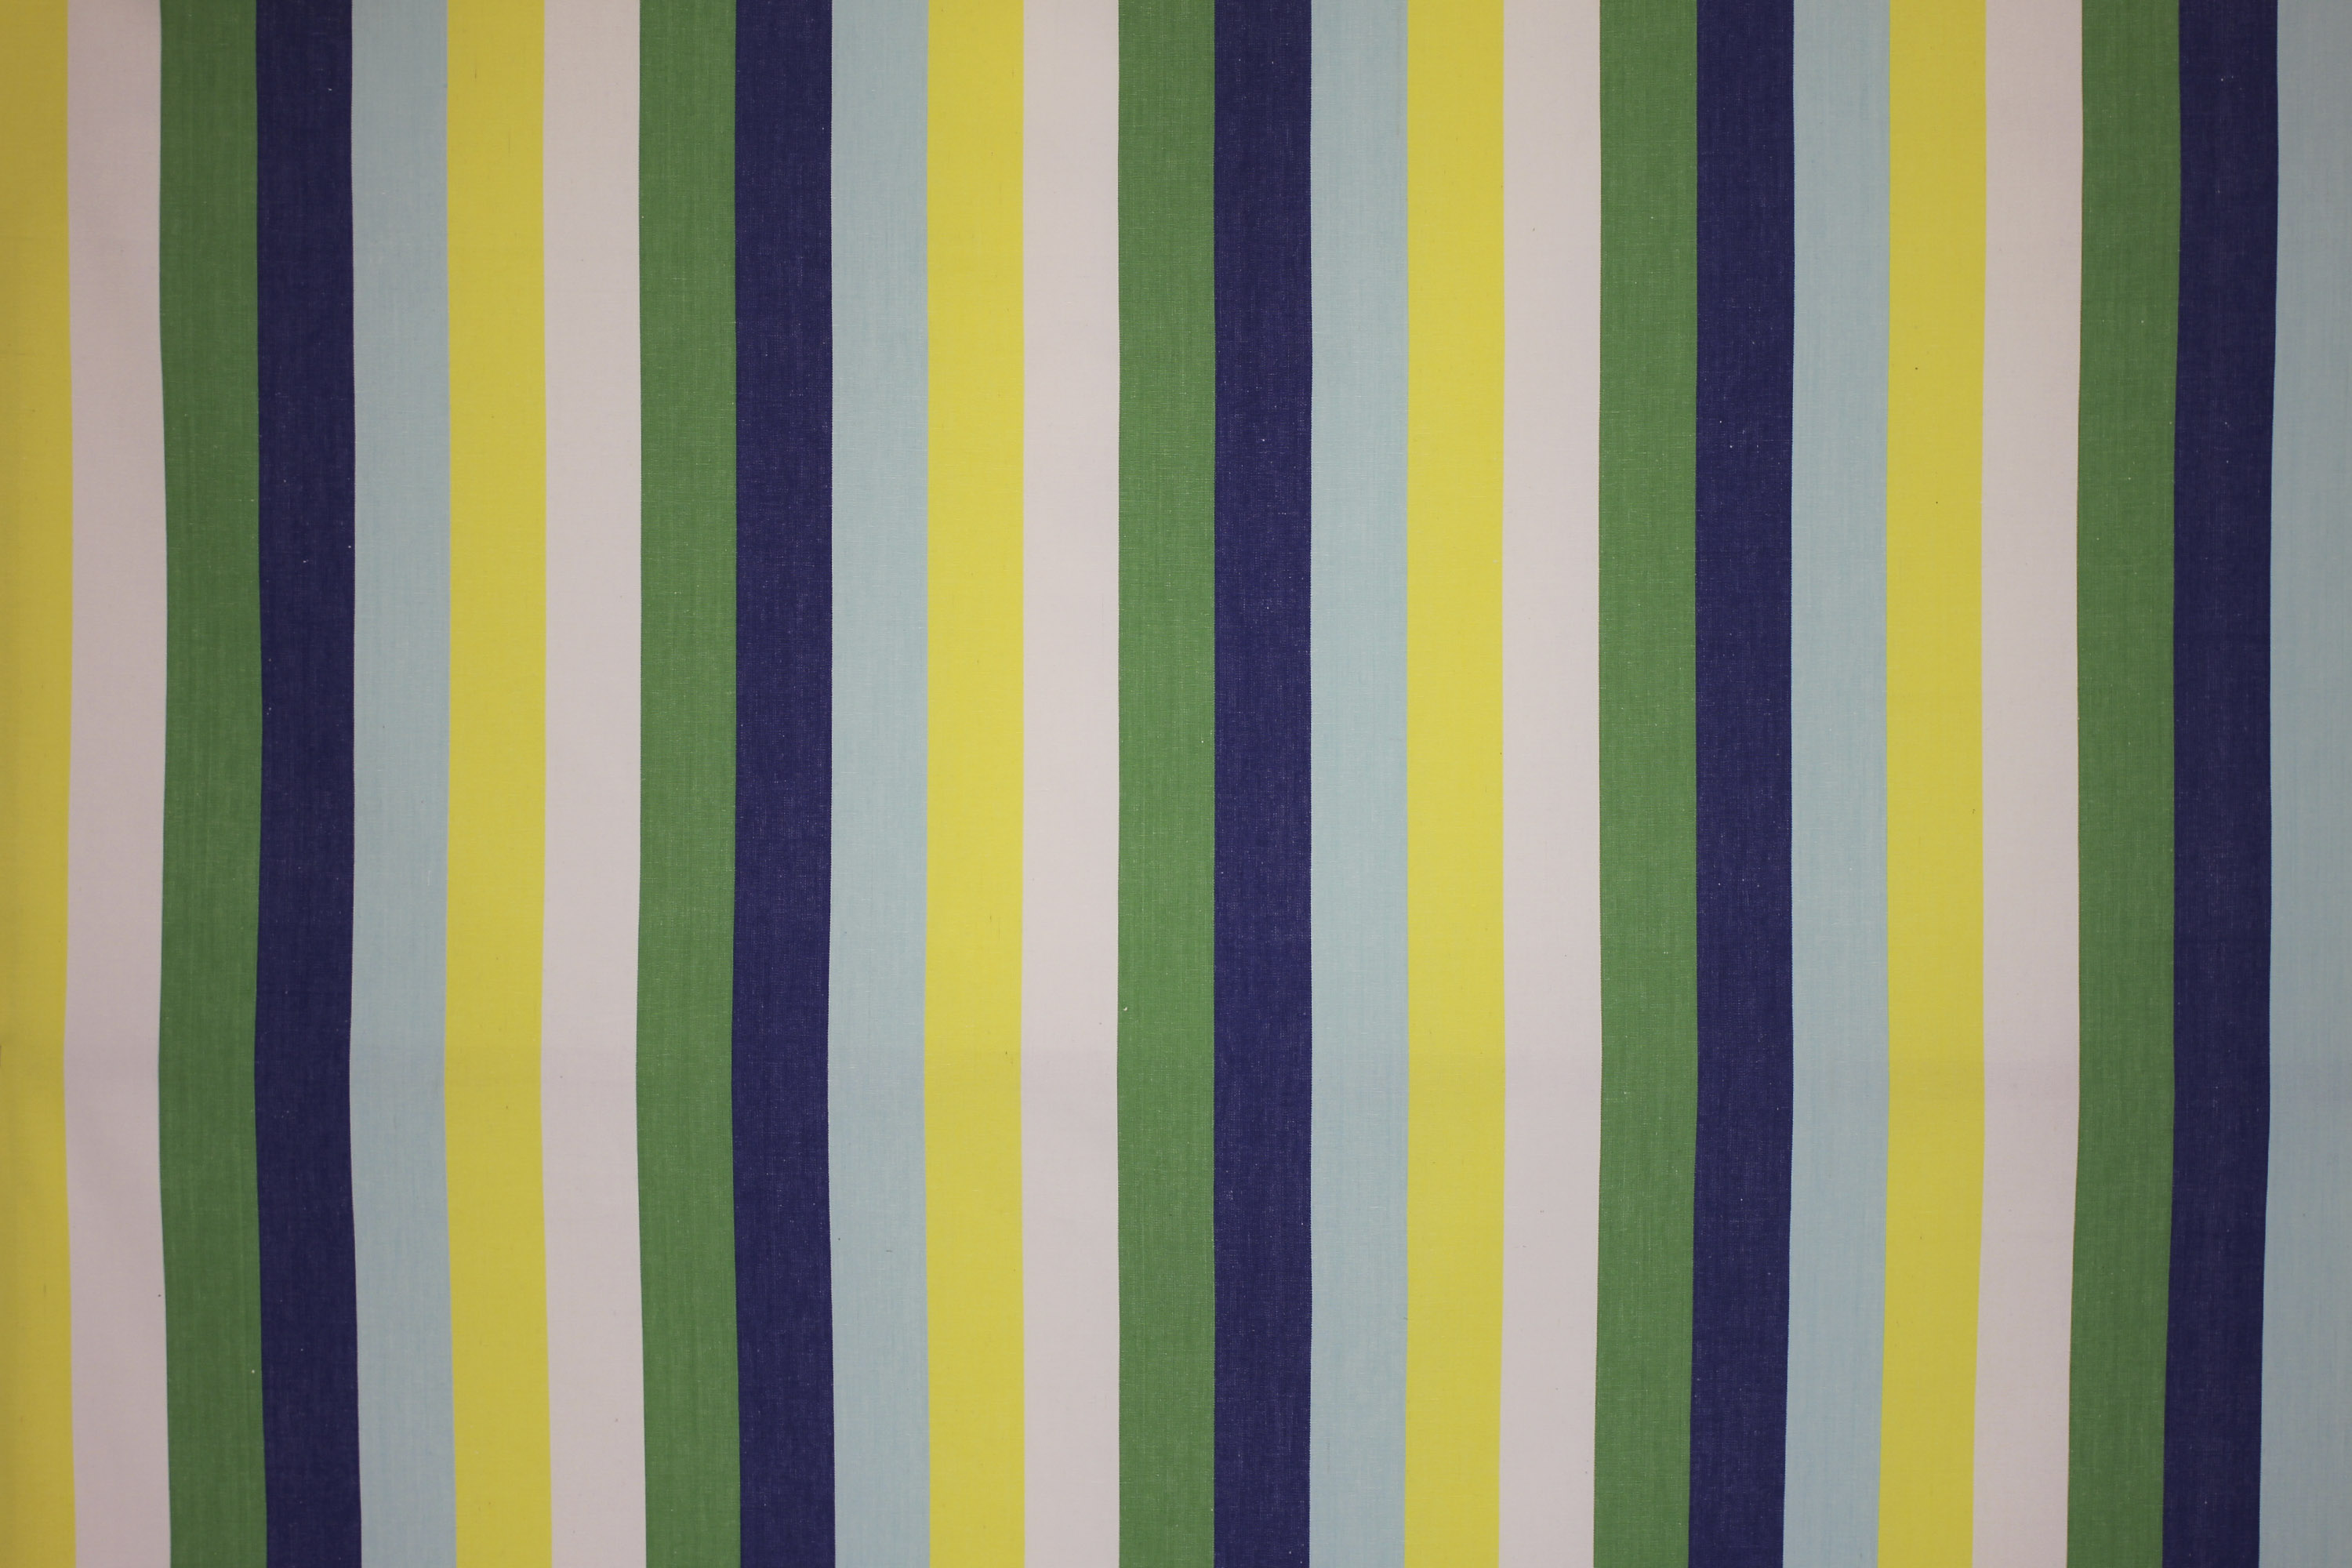 Blue Striped Fabrics | Stripe Cotton Fabrics | Striped Curtain Fabrics | Upholstery Fabrics  Flying Stripes